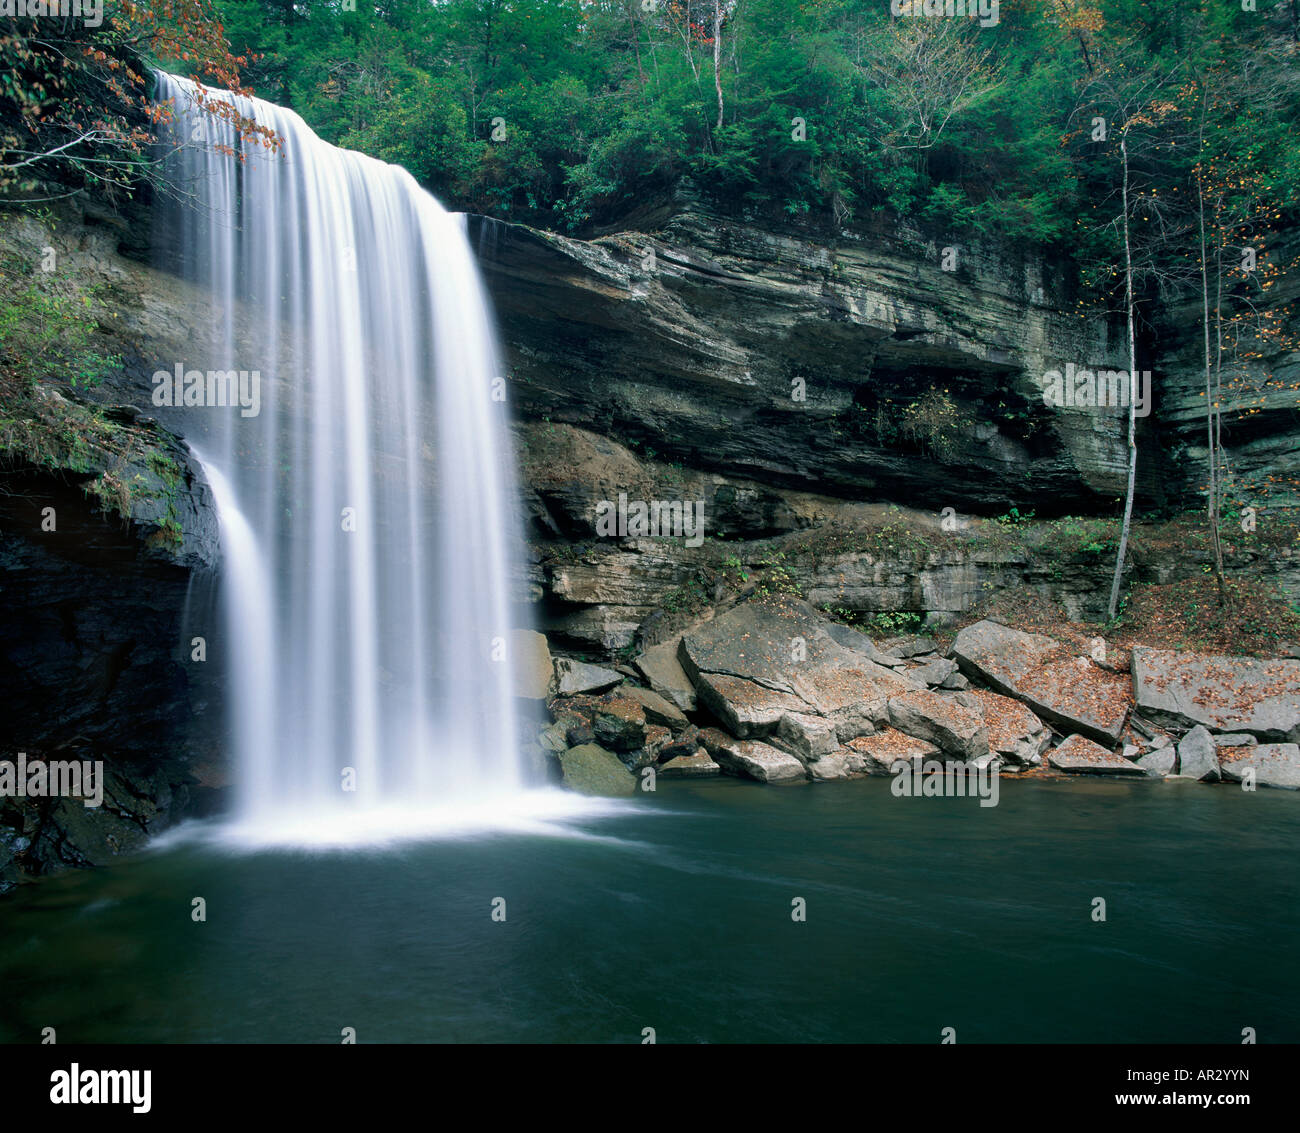 Lower Greeter Falls, Savage Gulf State Natural Area, Tennessee USA - Stock Image